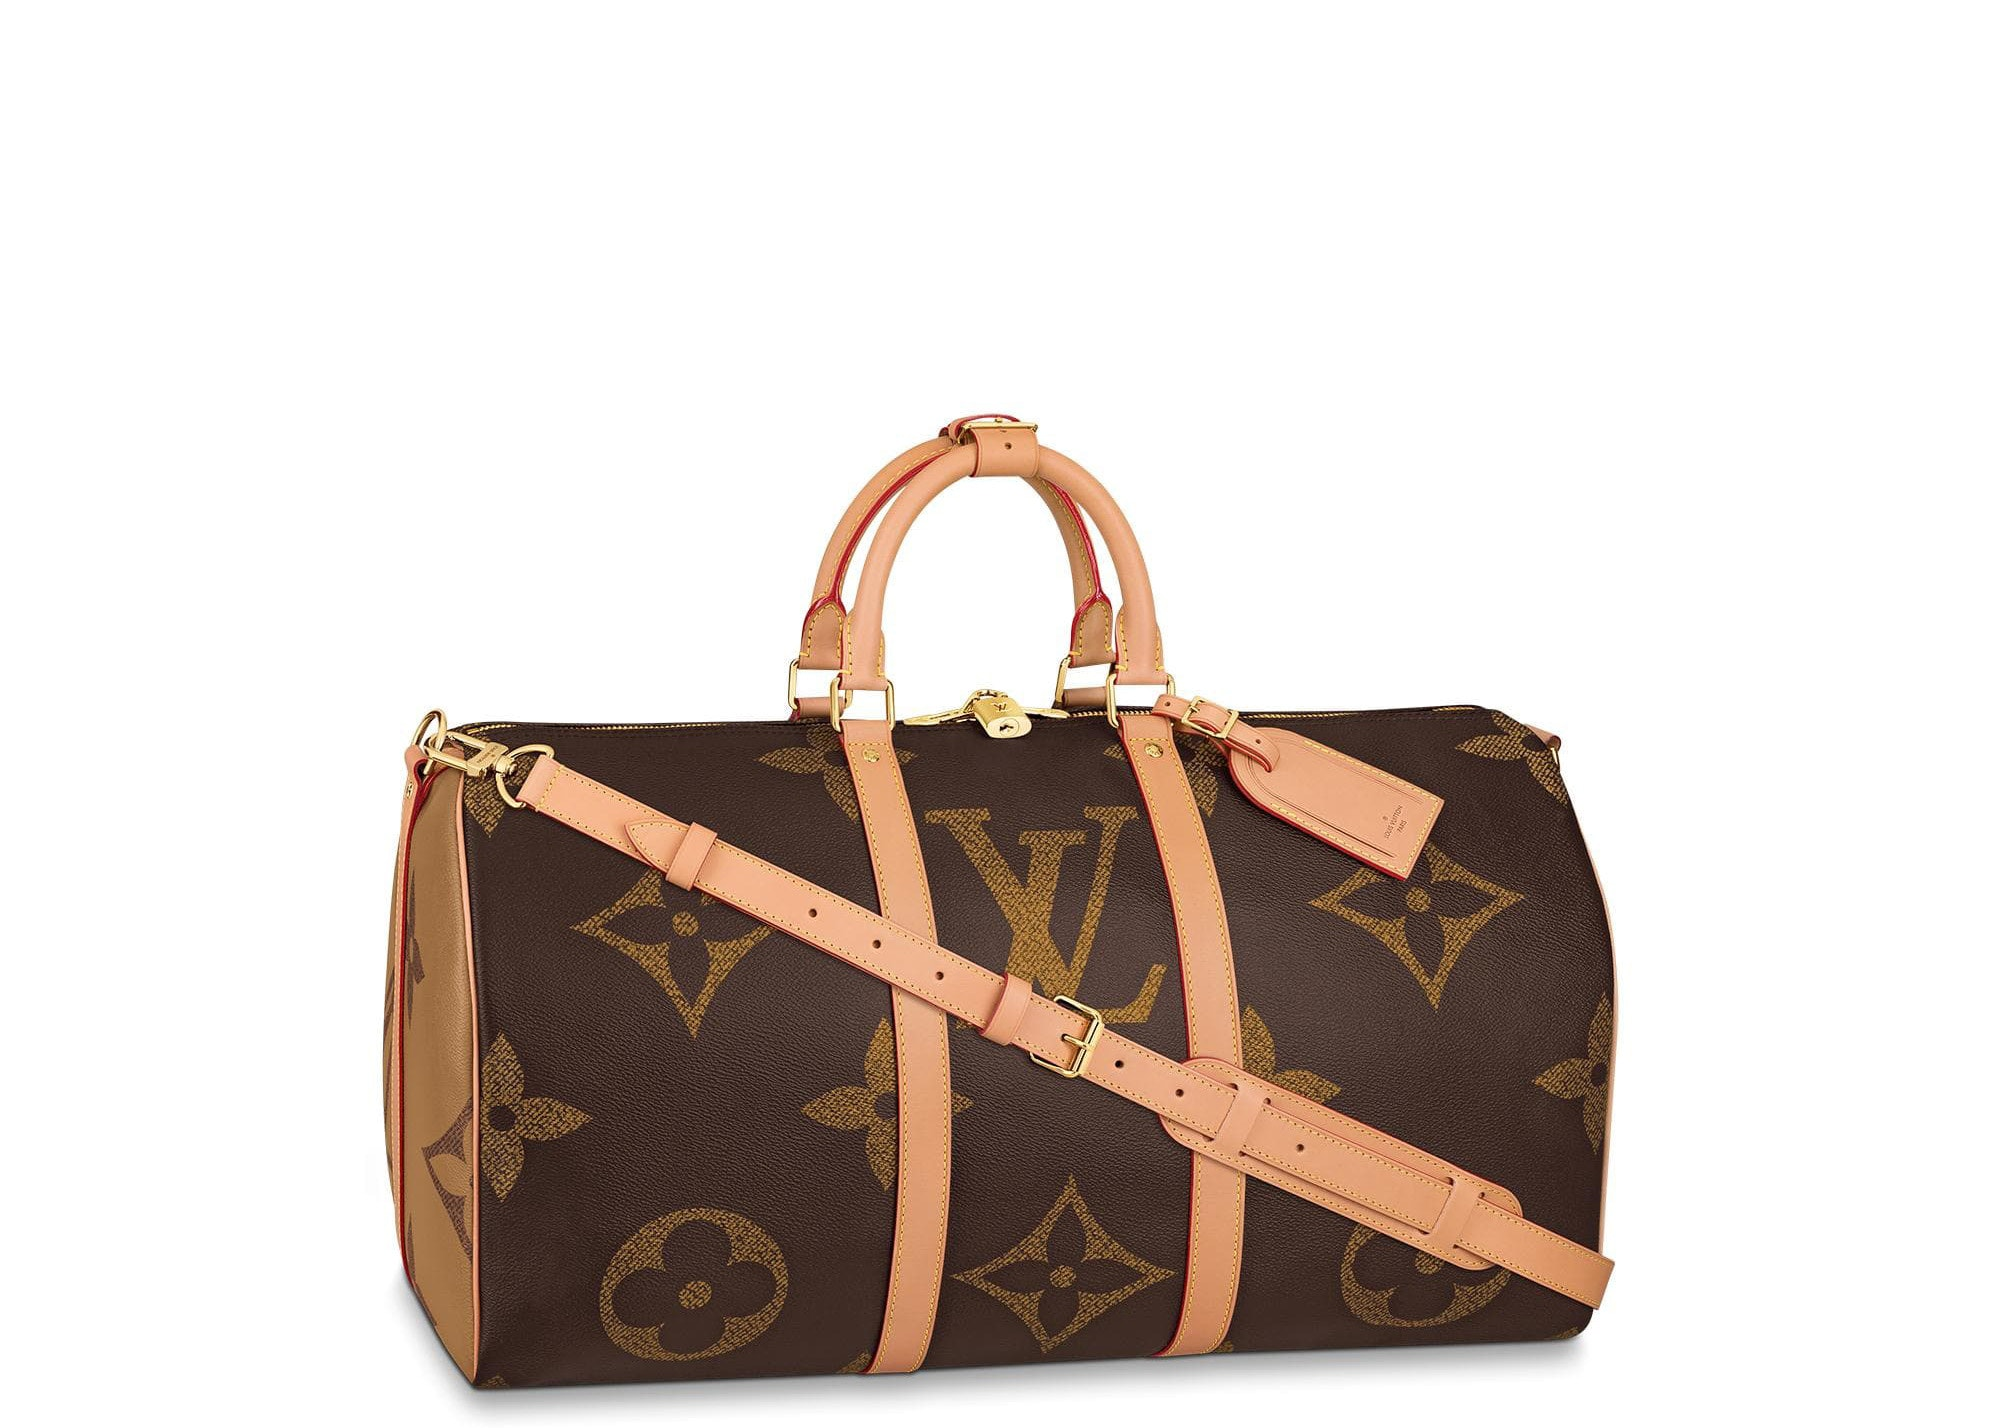 Louis Vuitton Keepall Bandouliere Monogram Giant Reverse 50 Brown